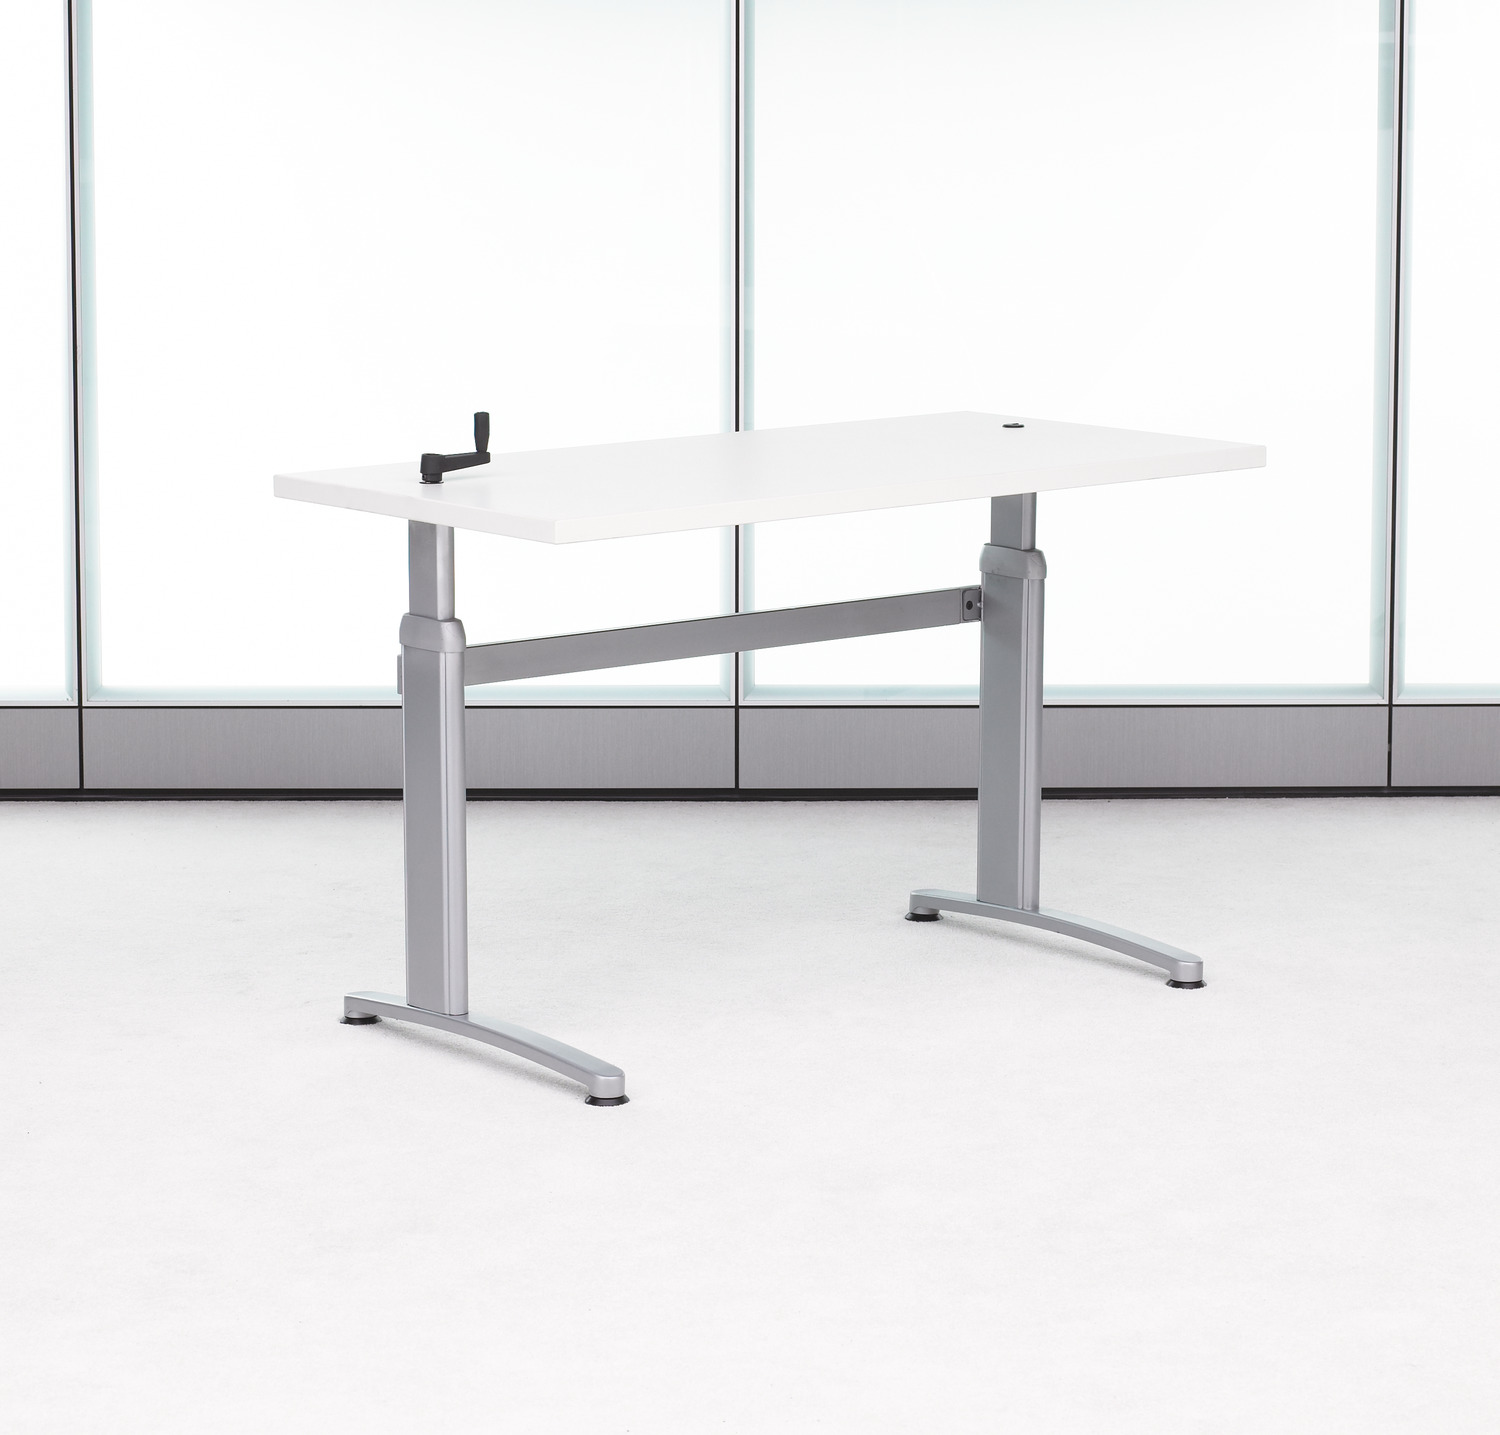 Expansion Training Tables Gallery - Adjustable training table